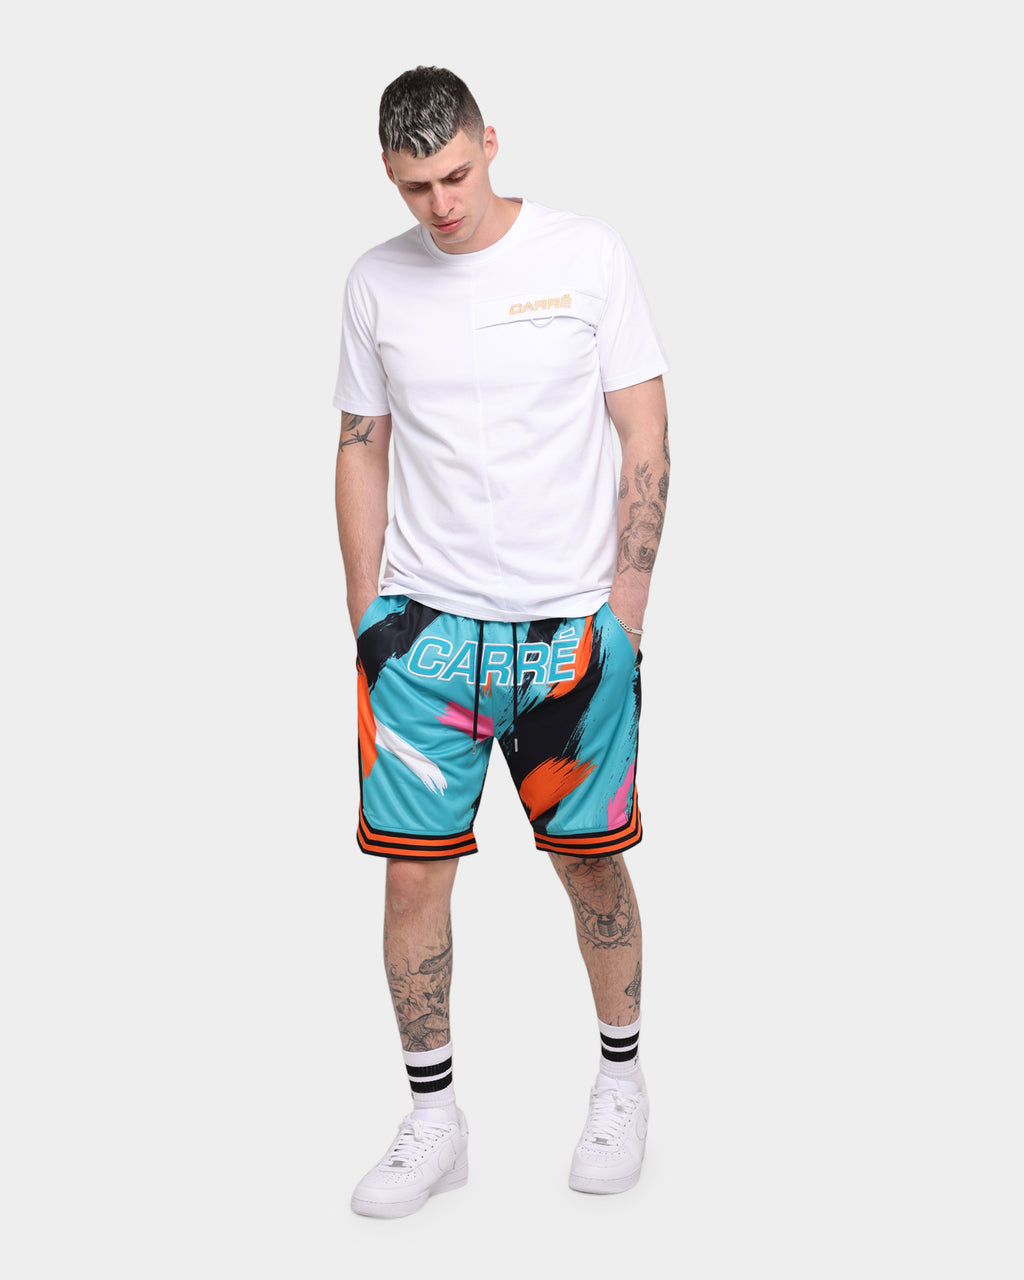 Carré Retro Ball Shorts Teal/Black